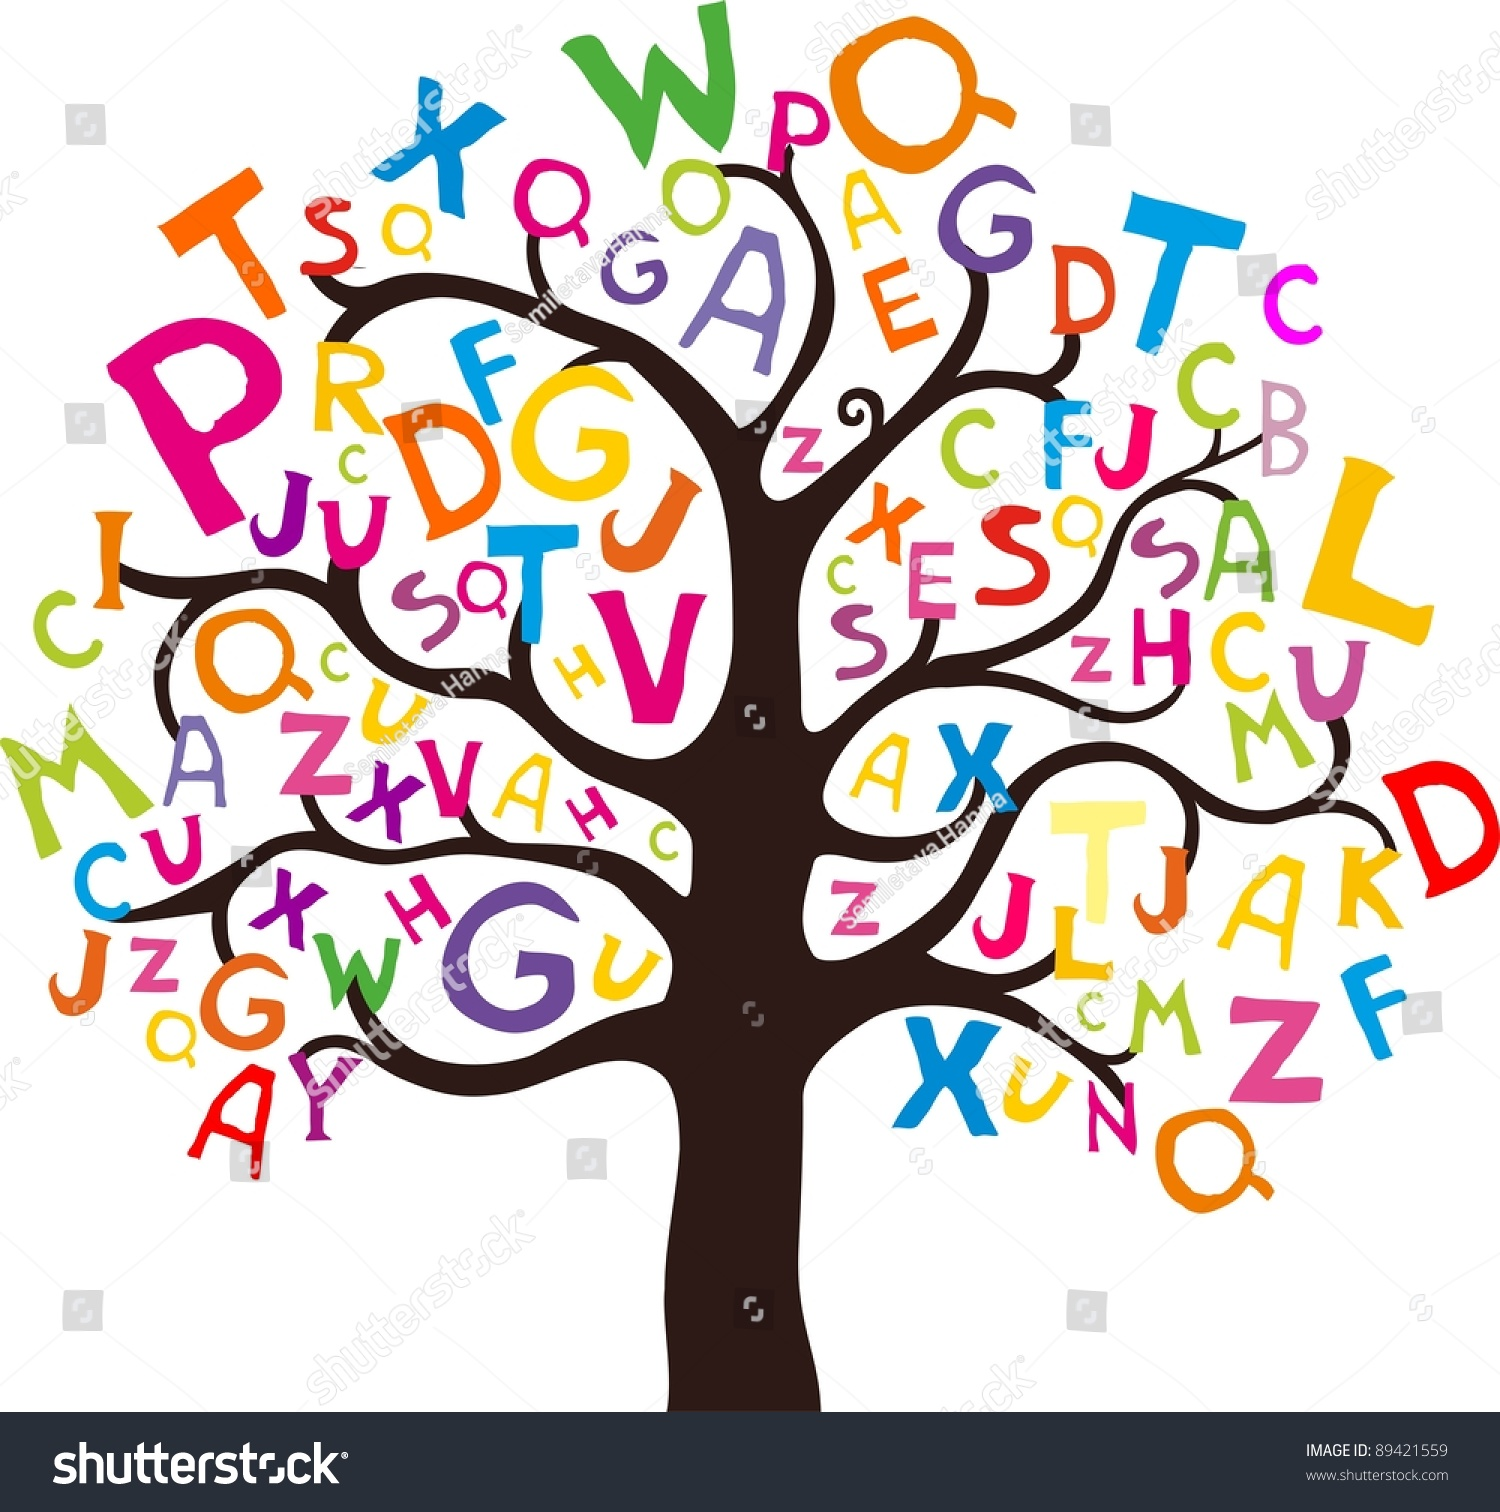 abstract tree colorful letters isolated on stock announcement clipart images announcement clipart free